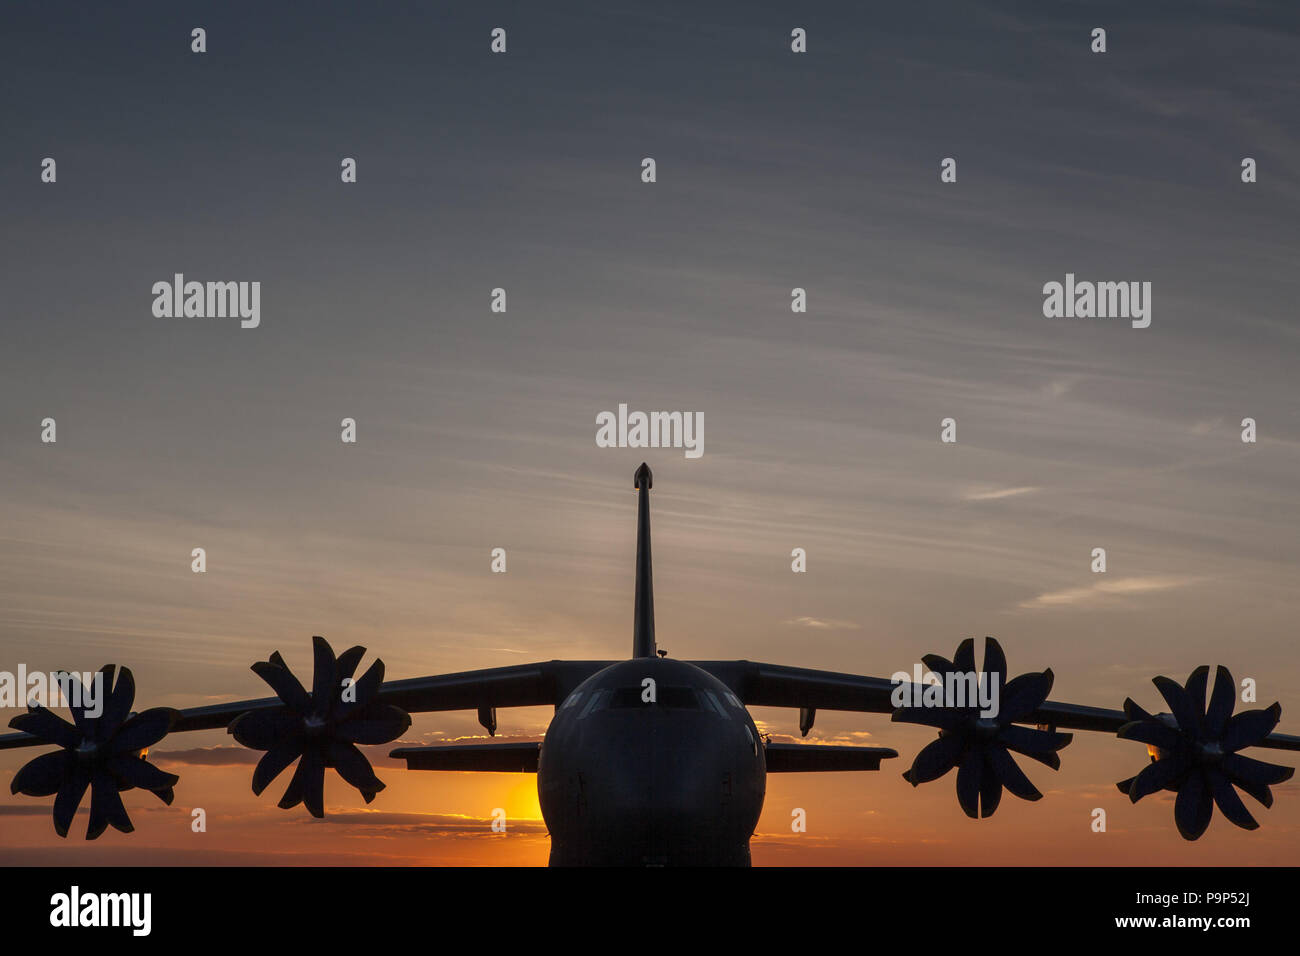 The Antonov An-70 four-engine medium-range transport aircraft, powered by propfan engines seen in sunset light on the first day of the MAKS-2013 inter - Stock Image